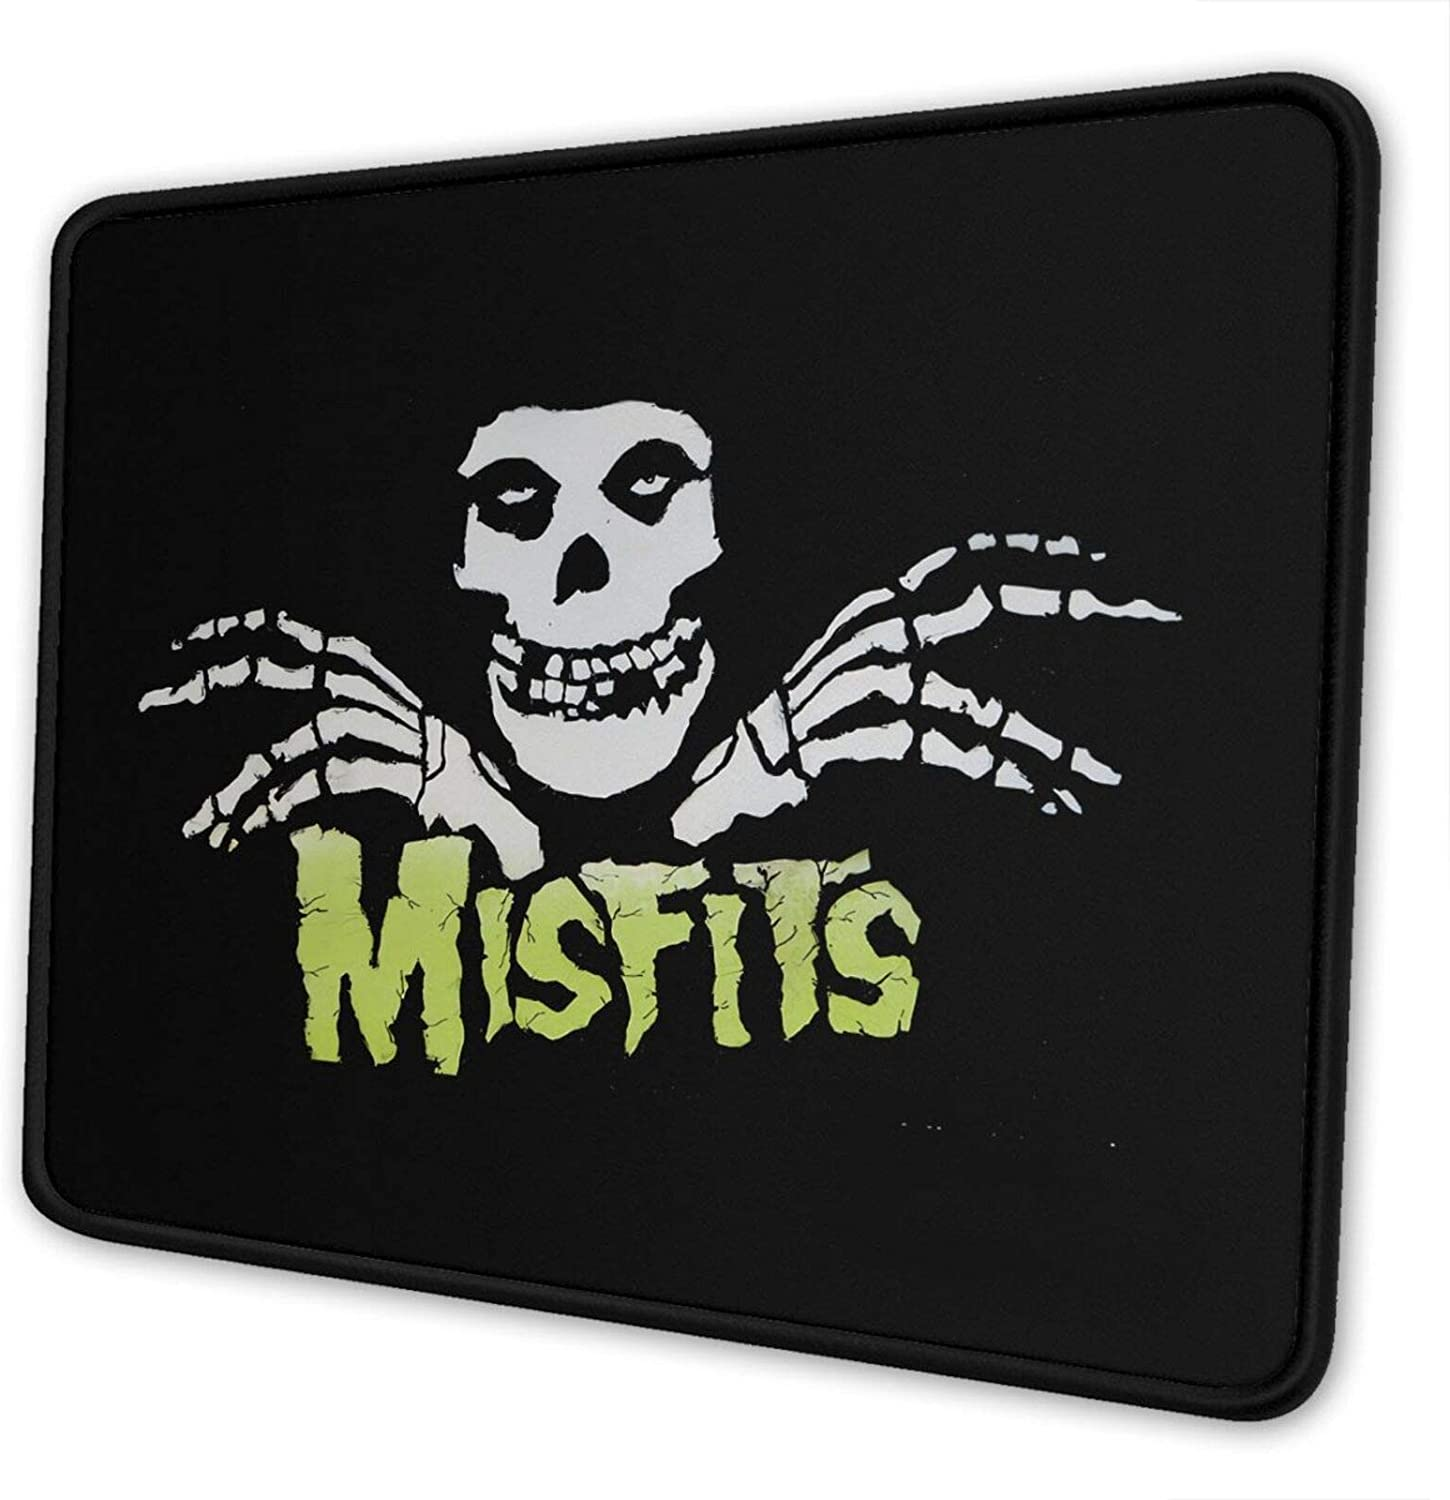 Fejarx Misfits Computer Game Mouse Pad Smooth Surface Non-Slip Base